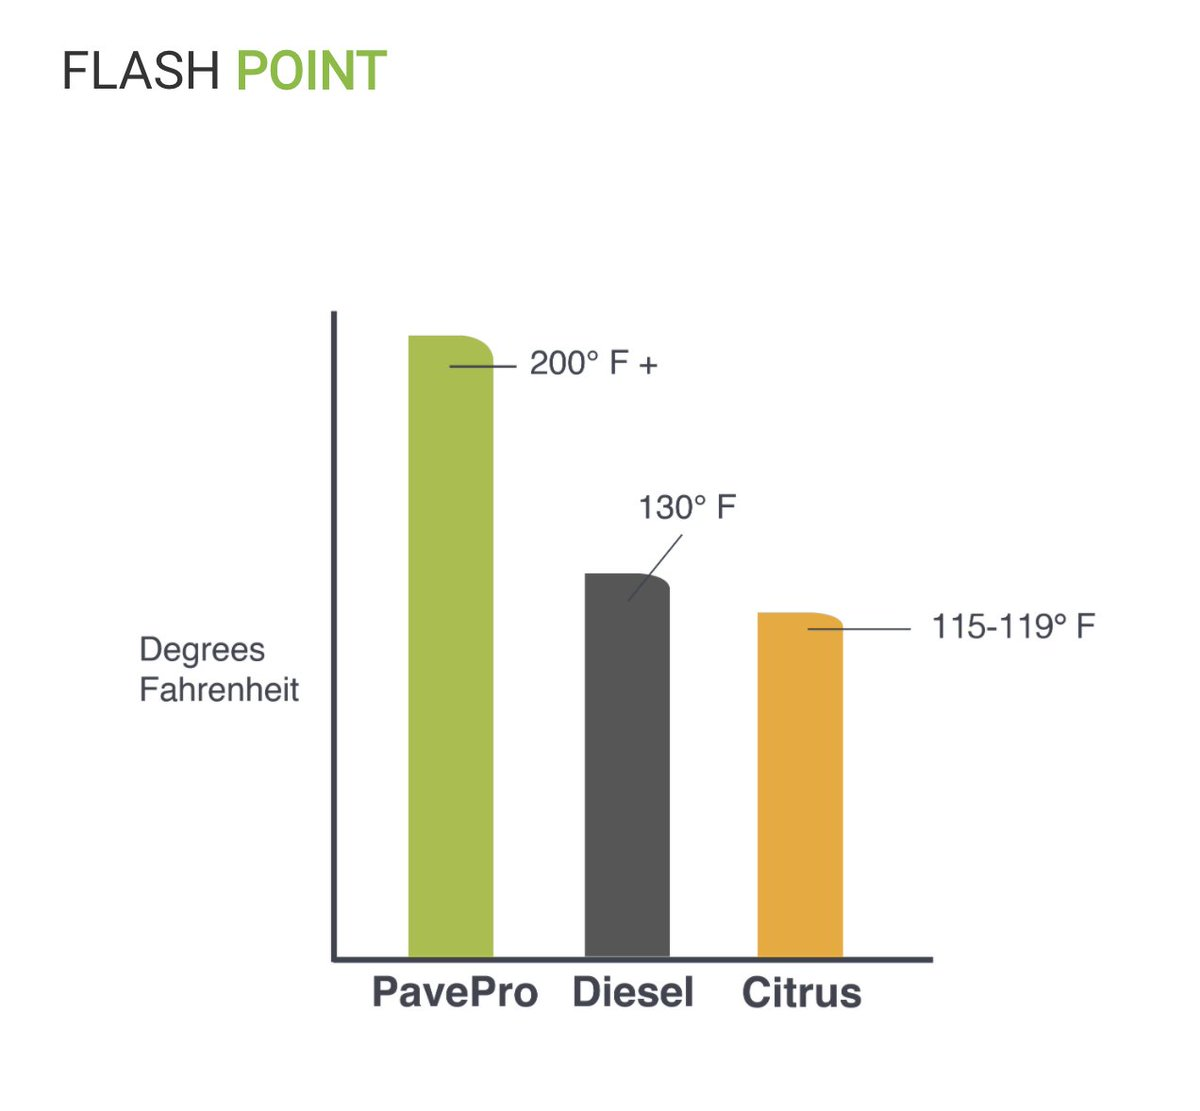 PavePro has a closed-cup flash point well over 200 degrees Fahrenheit. Not only is it much safer to use in #asphalt operations, but it is also more effective as it lasts longer and works harder than #diesel fuel or #citrus cleaners. Visit  to learn more.